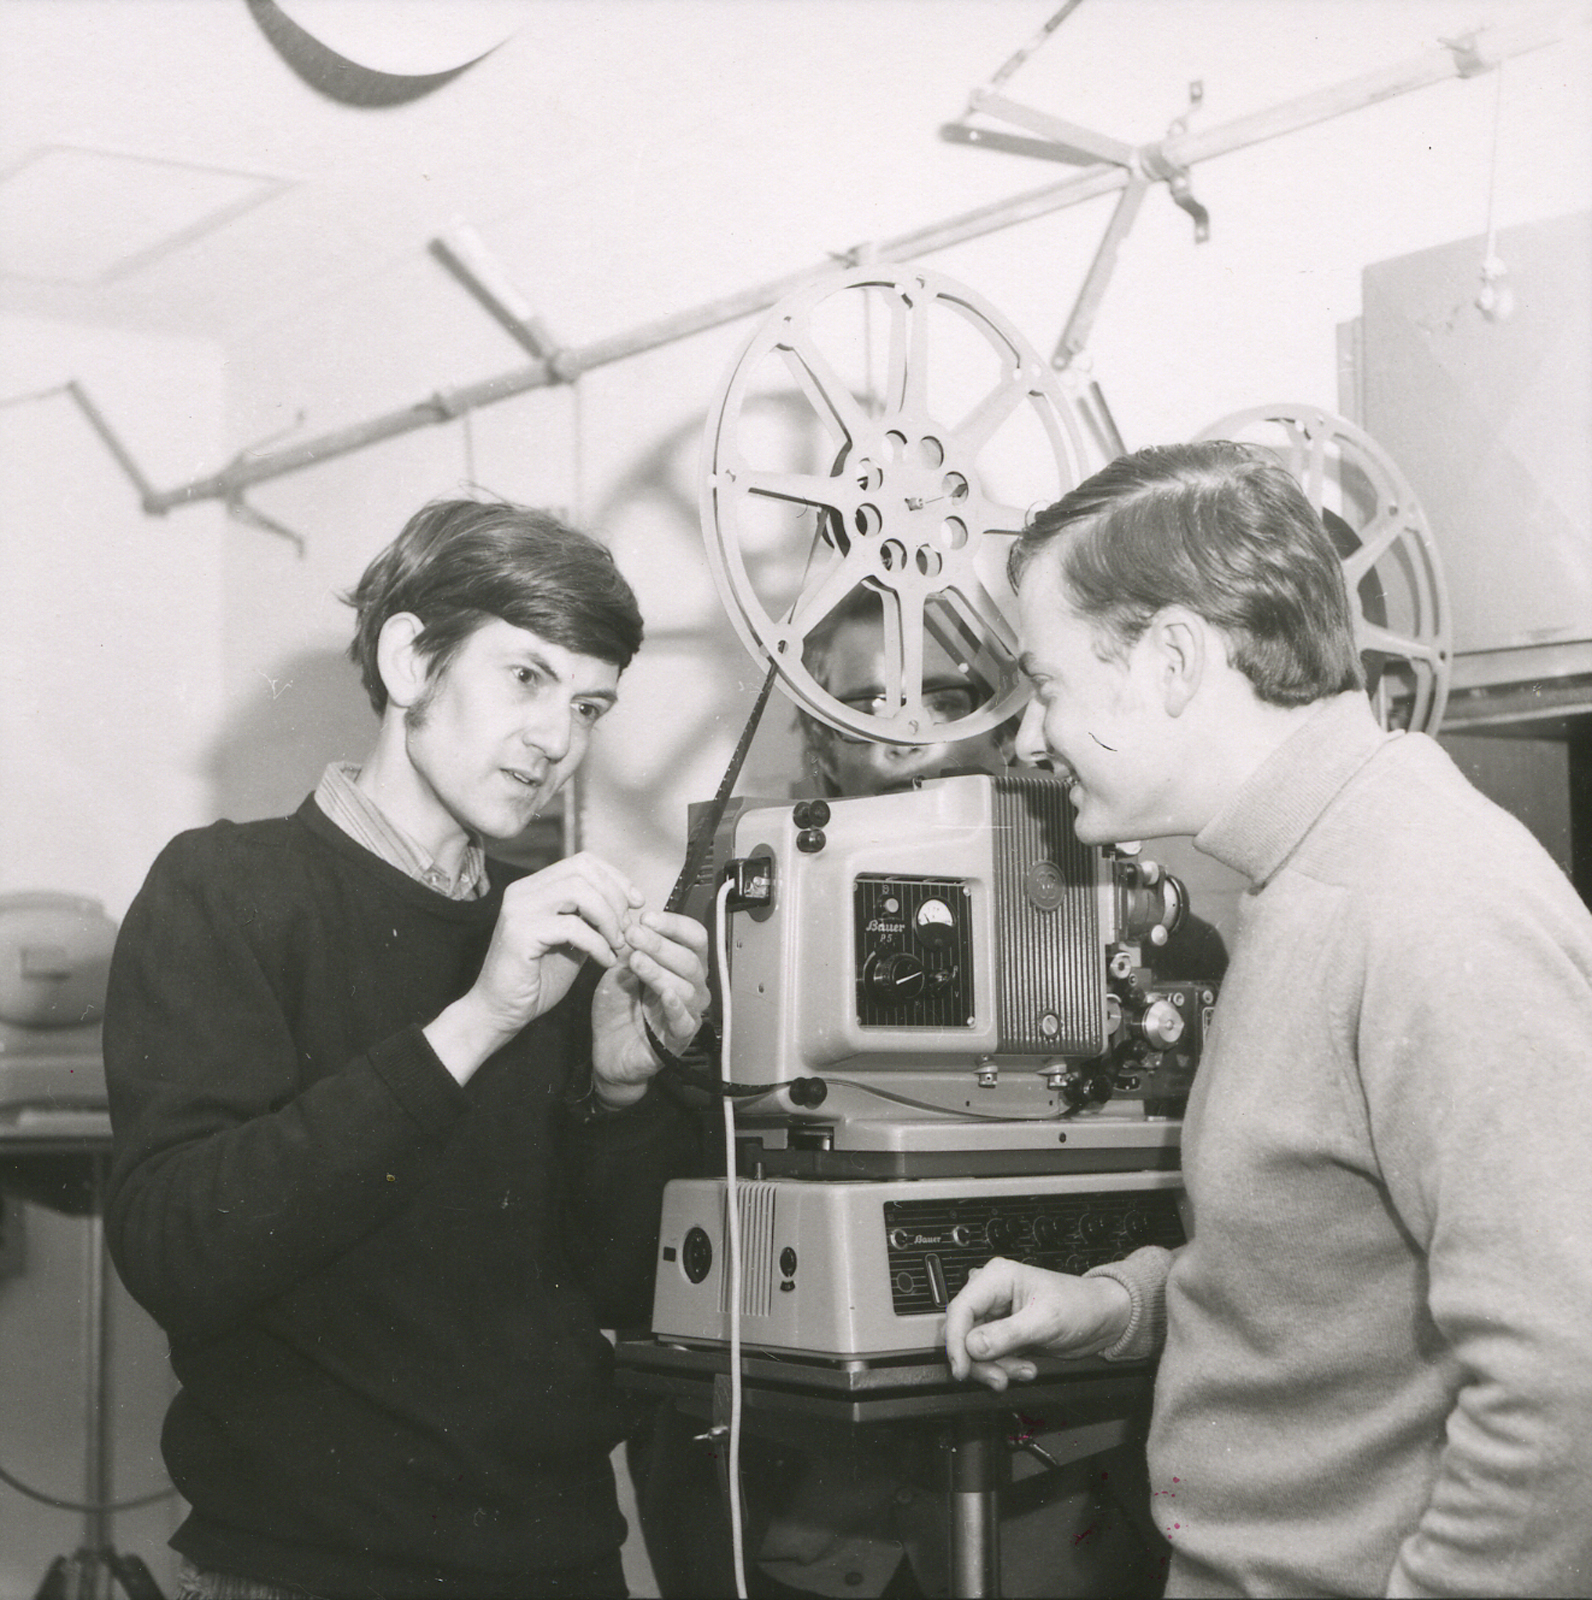 L-R: Andrew Pike with film maker and ANU Creative Arts Fellow Arthur Cantrill, 1969. Photo courtesy of ANU Archives.